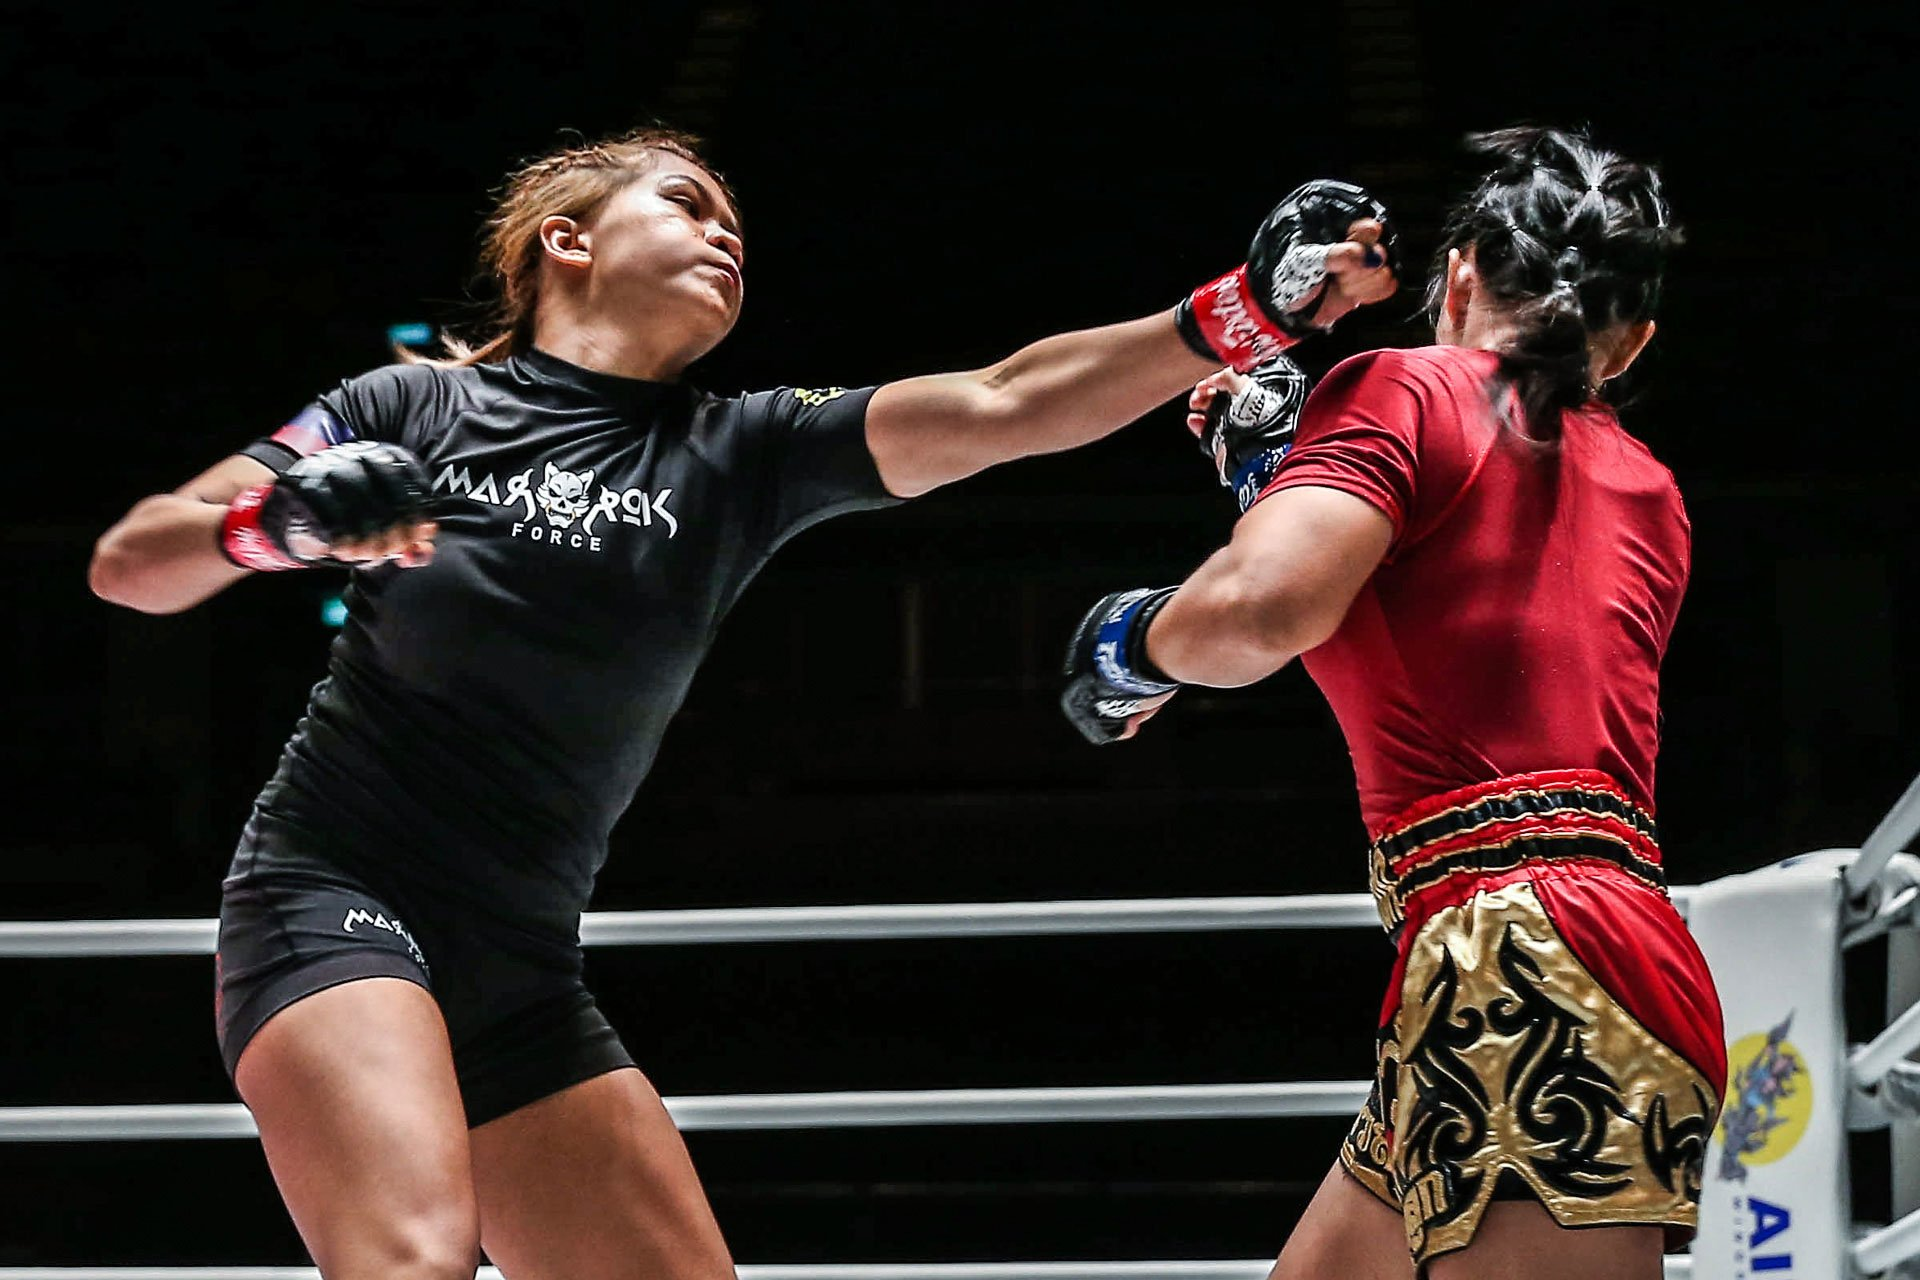 Tiebreaker Times Denice Zamboanga declares after ONE: A New Breed: 'I am only getting started' Mixed Martial Arts News ONE Championship  ONE: A New Breed Denice Zamboanga